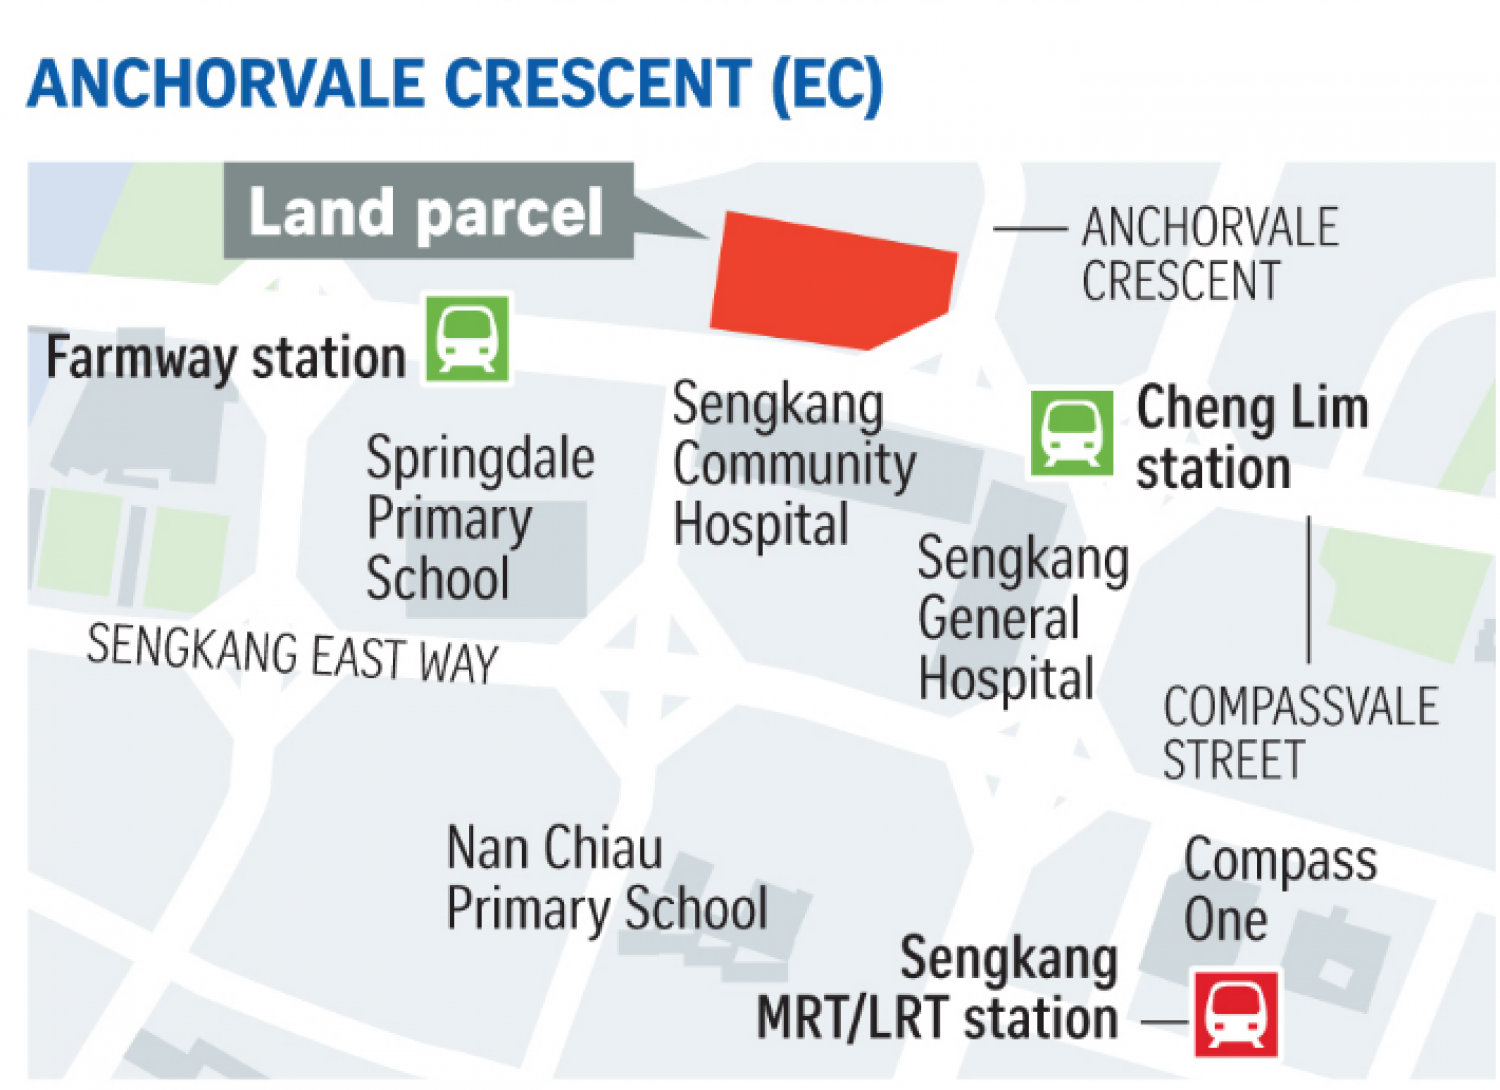 Ole EC at Anchorvale Crescent